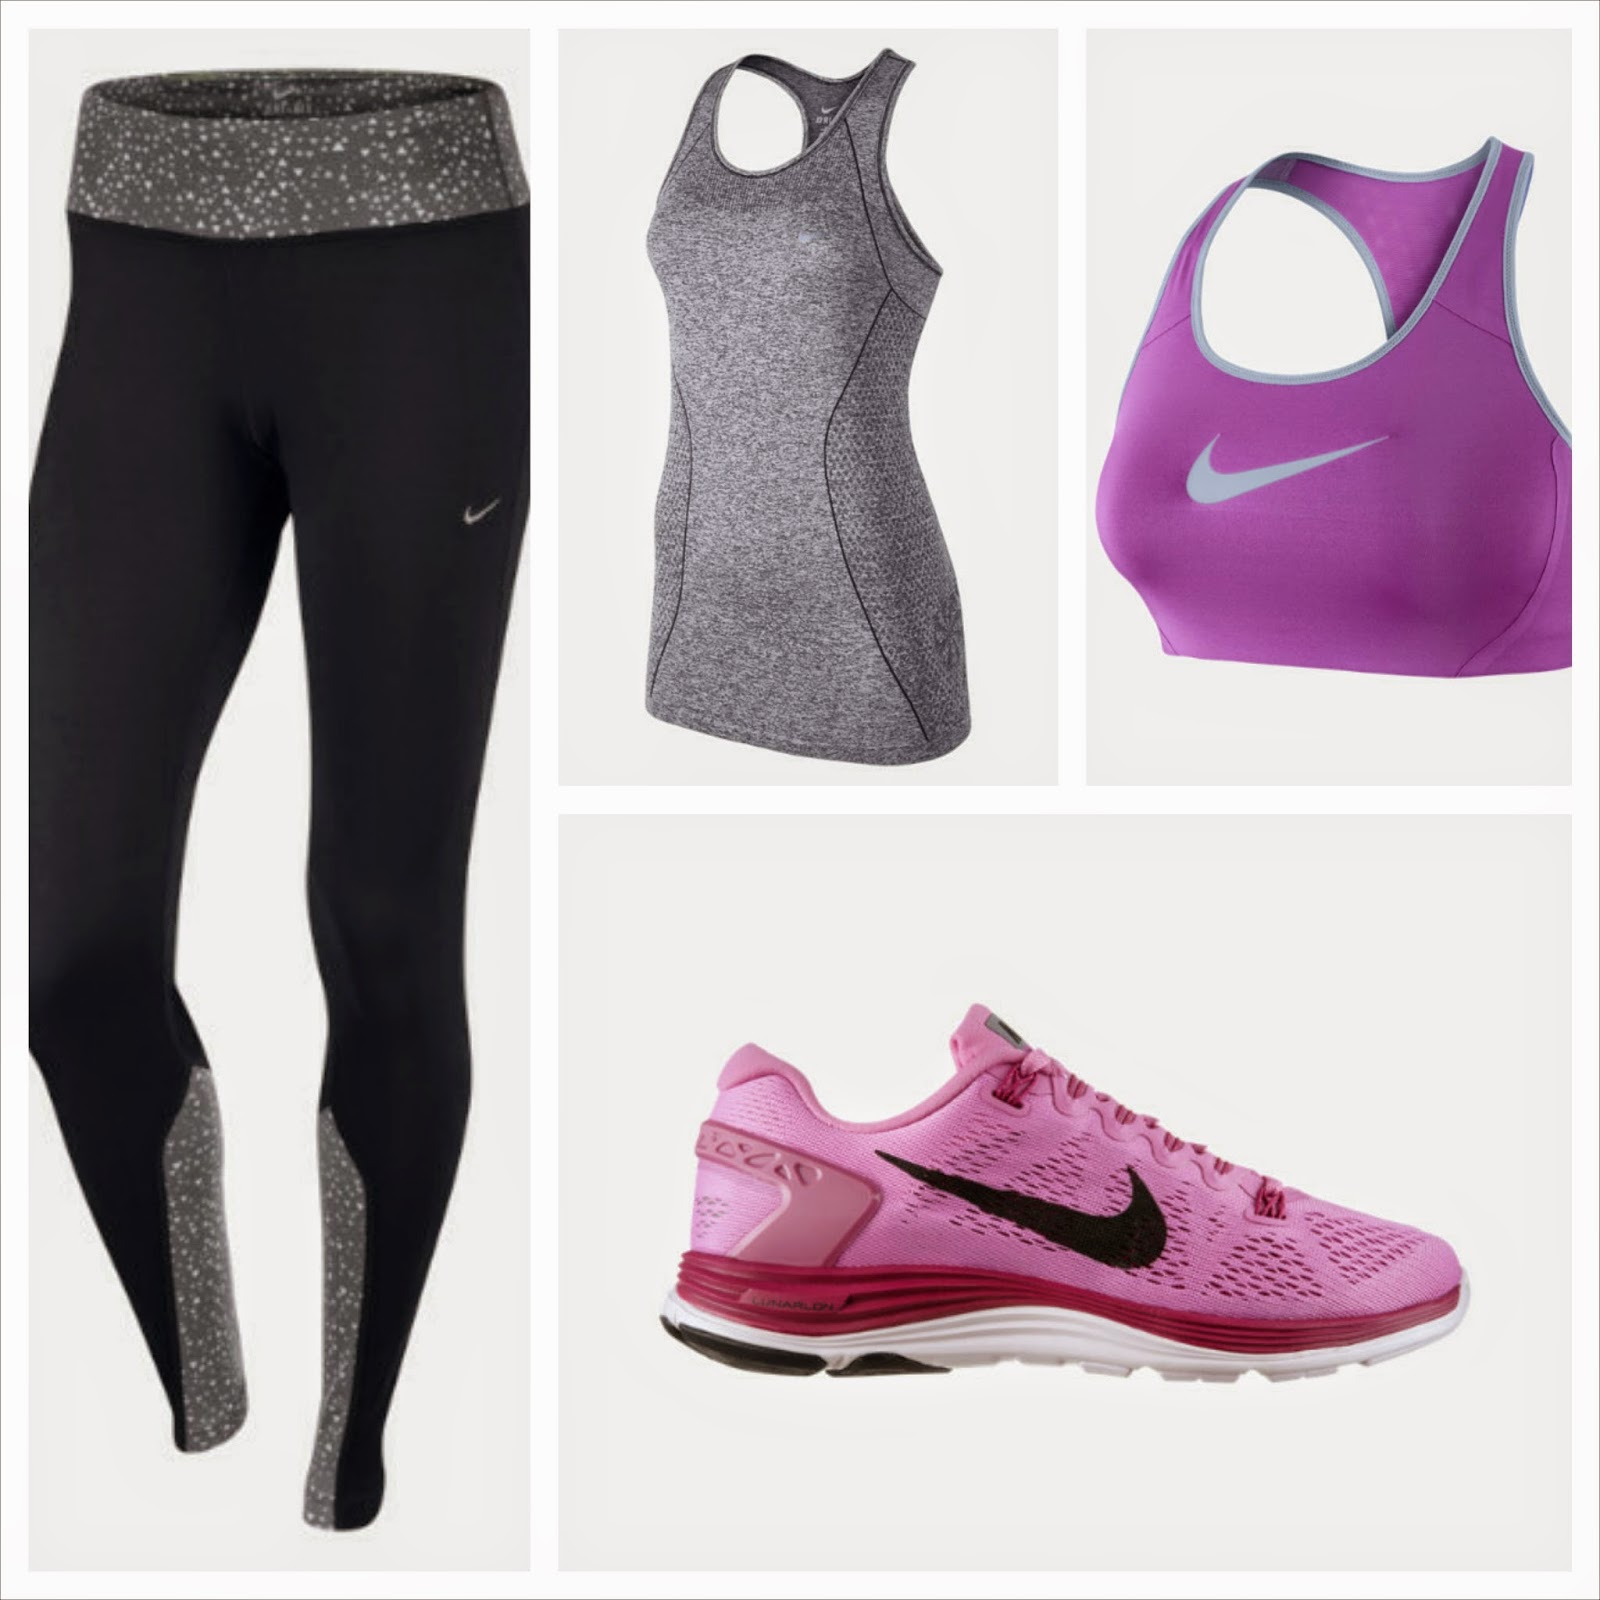 Workout Style #1